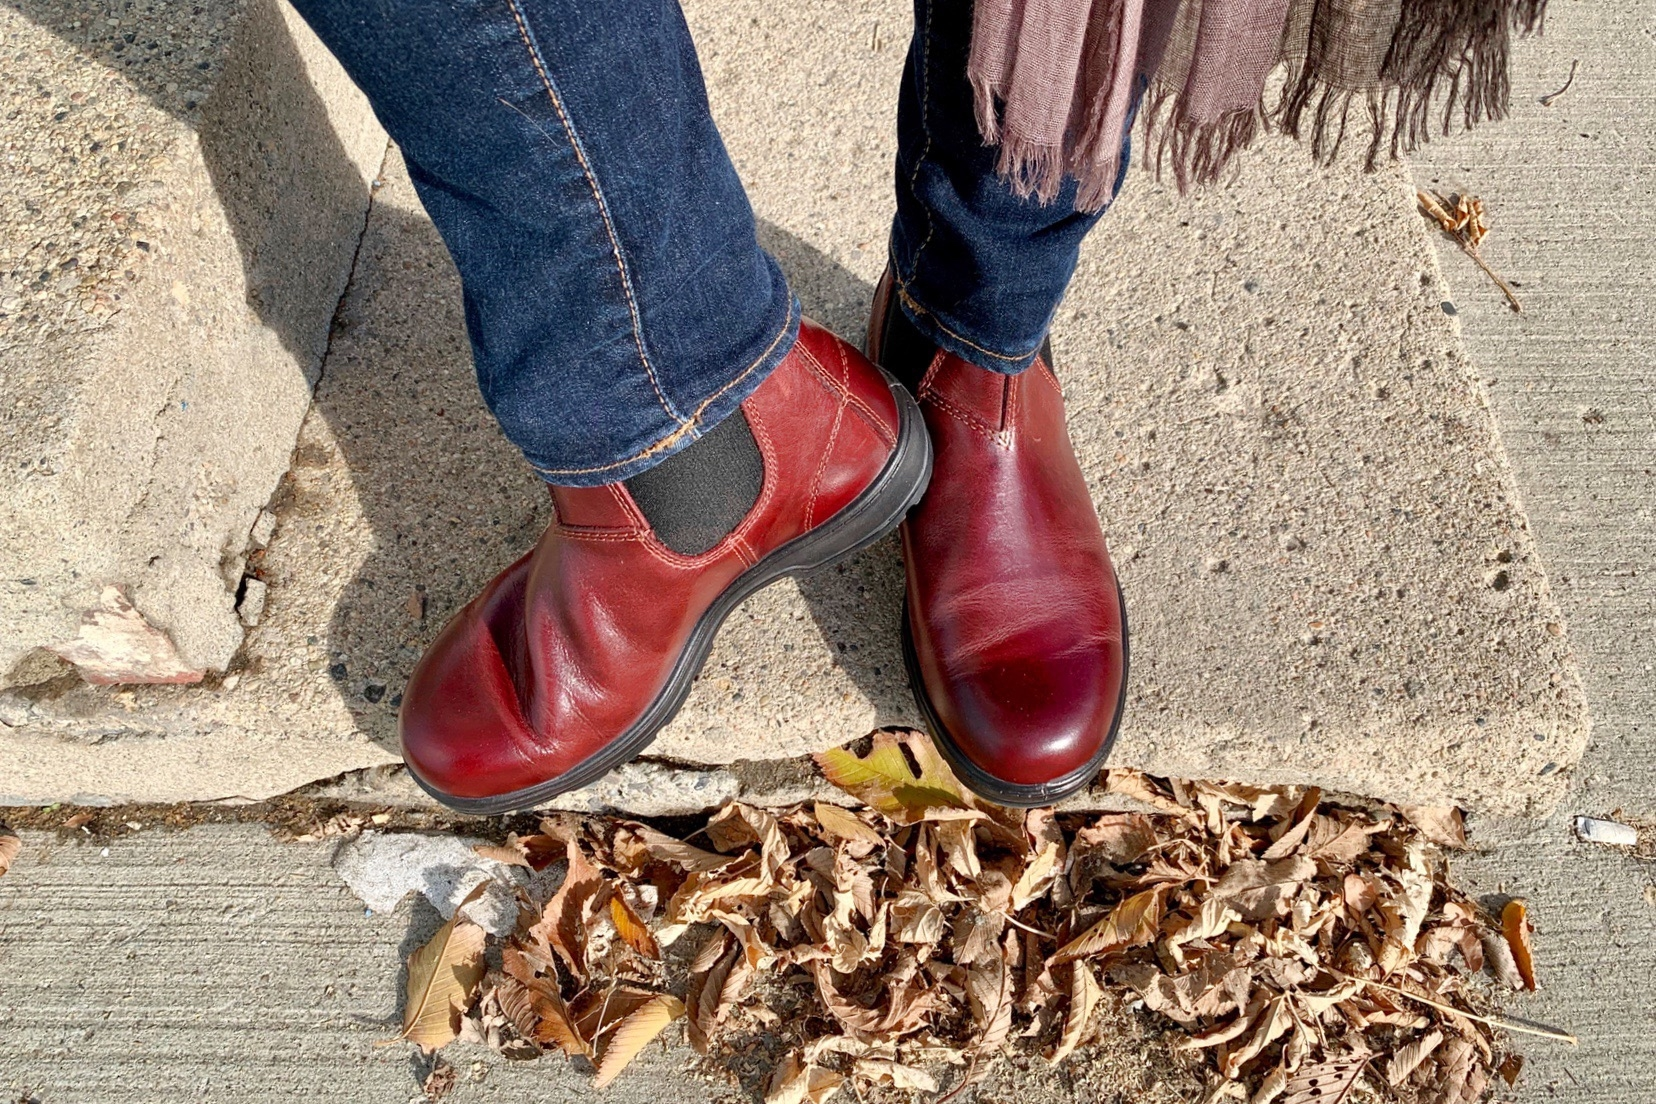 my feet on an old sidewalk showing off a new pair of redwood Blundstone boots